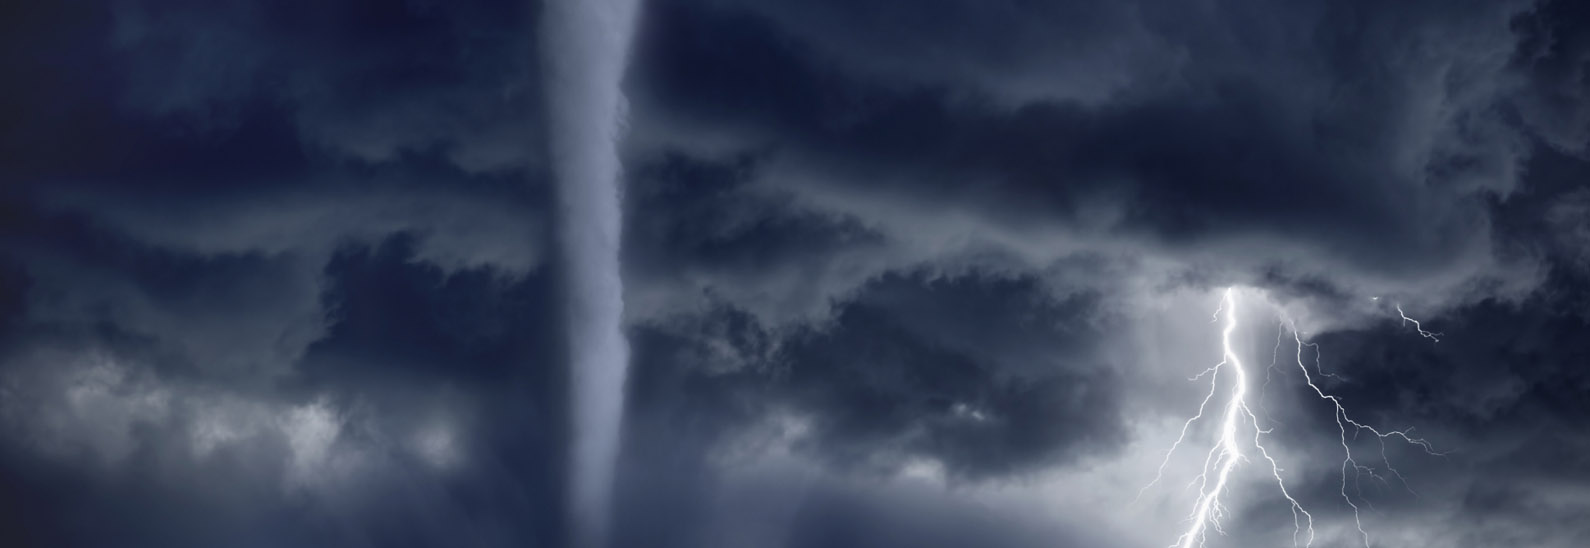 headers_homepage_0004_tornado